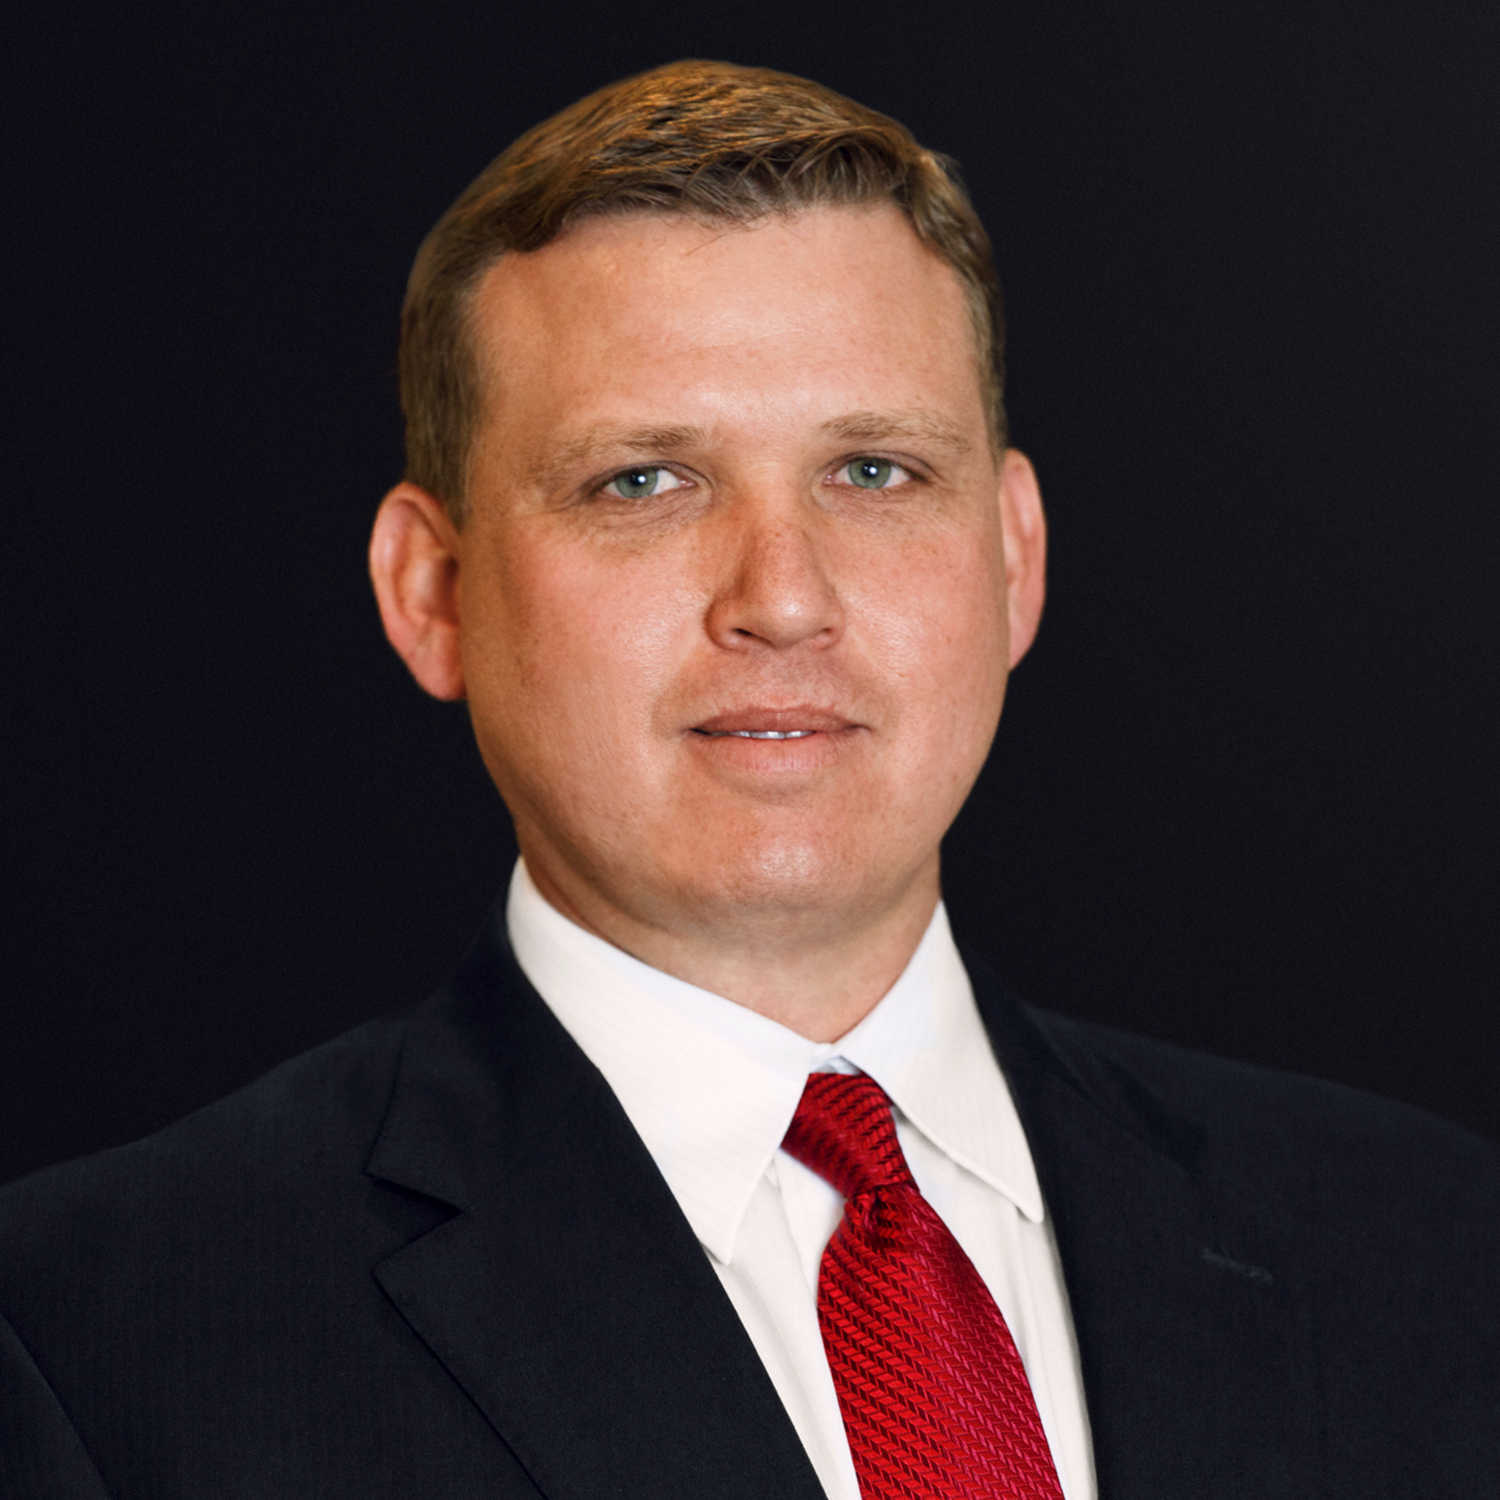 TIM MILLERPRESIDENT / CEO - 15 Years Insurance and Securities Marketing Experience